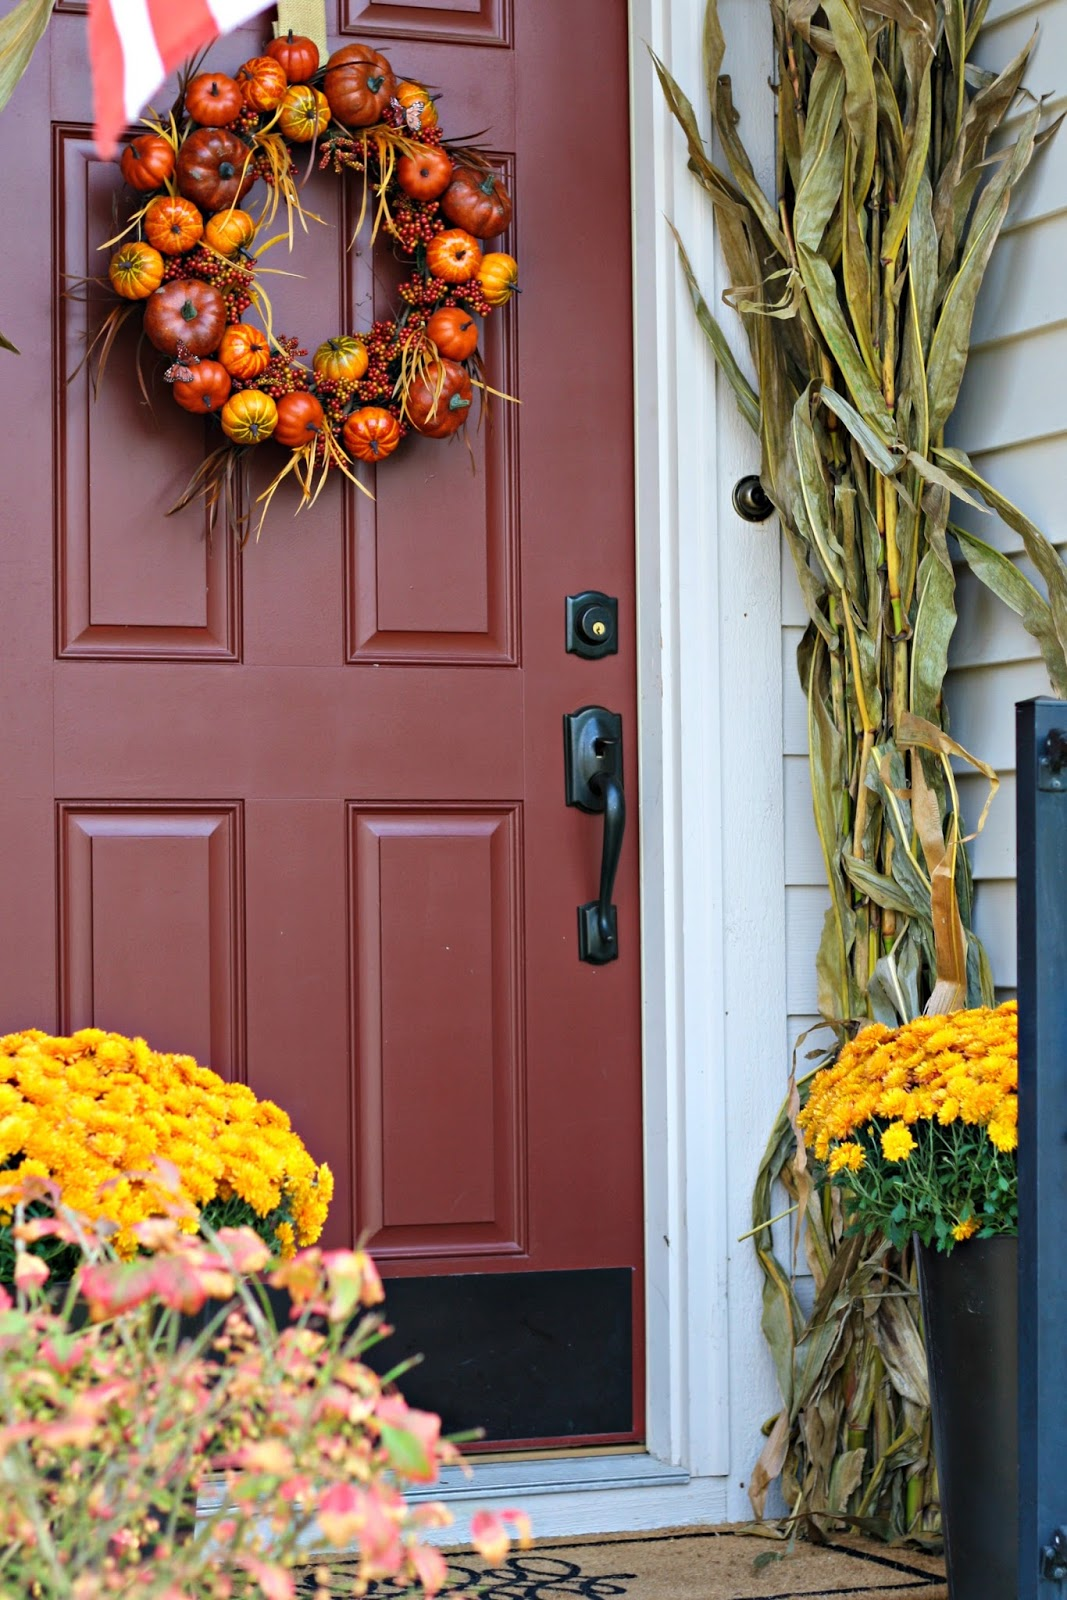 Fall Decor To Make Best Of Fall Decorating Ideas From Thrifty Decor Chick